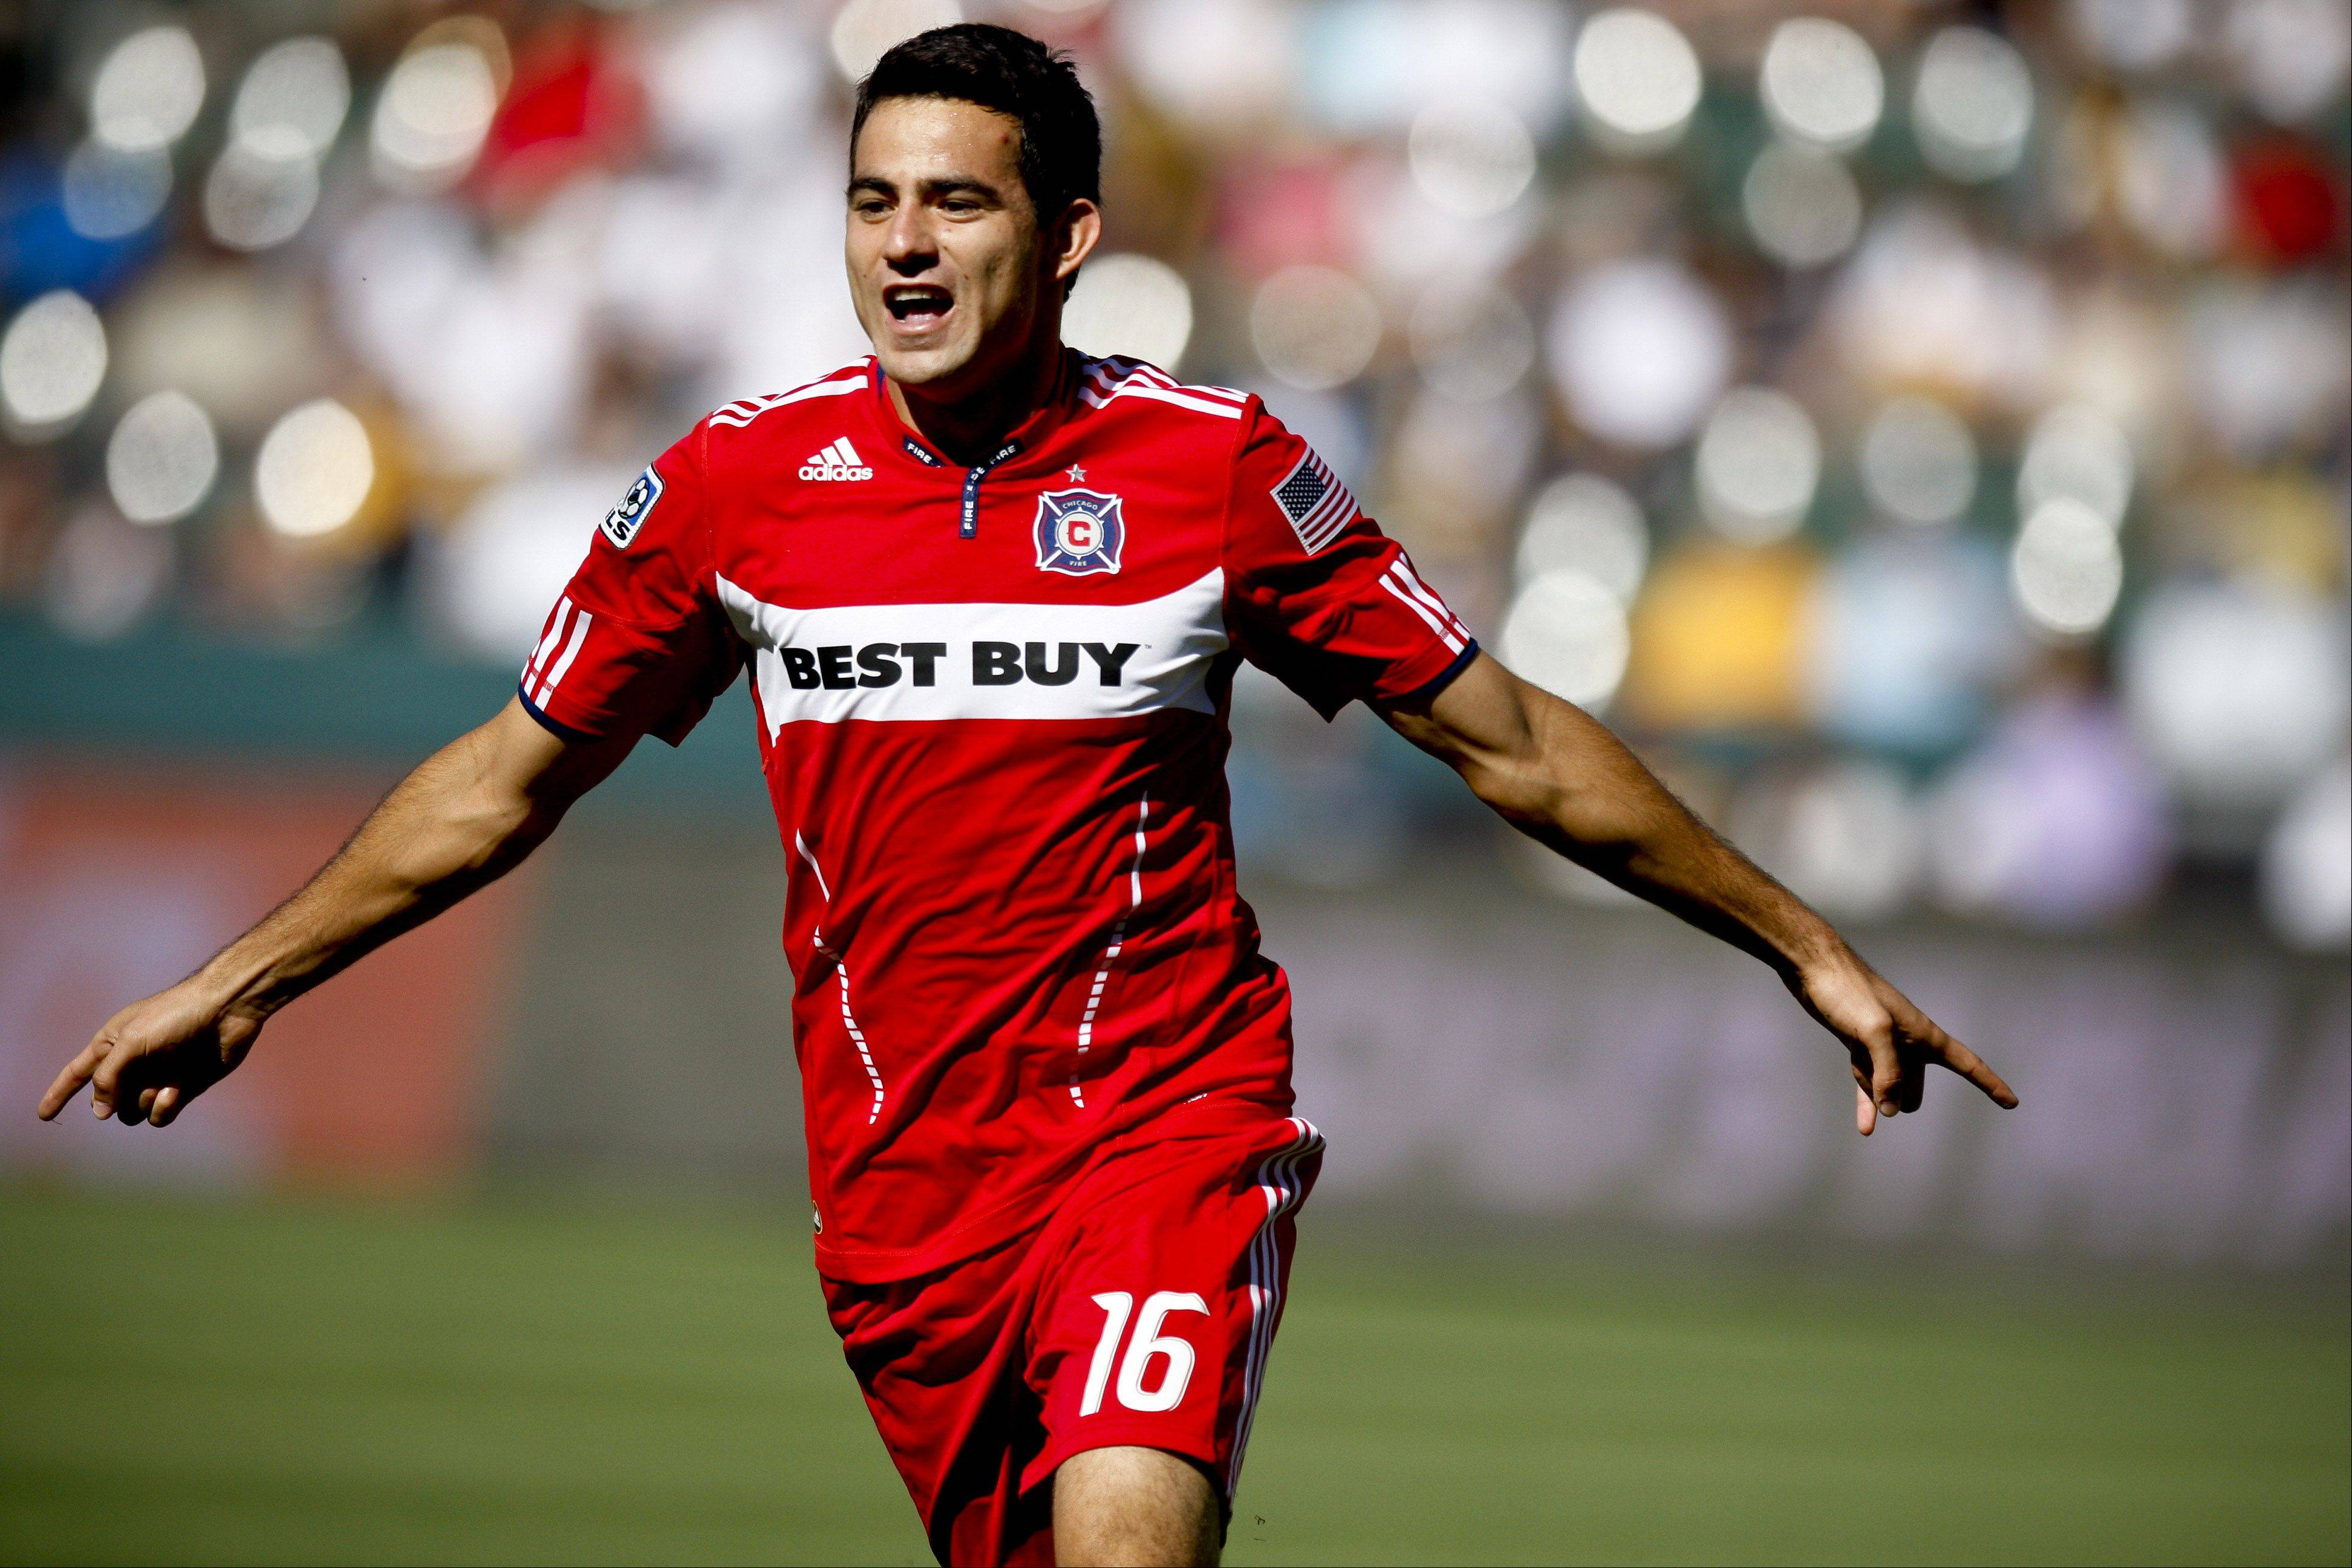 Chicago Fire midfielder Marco Pappa, who ranks second on the team with 5 goals this season, said the rumors that he has been contacted by a European clubs are not true.